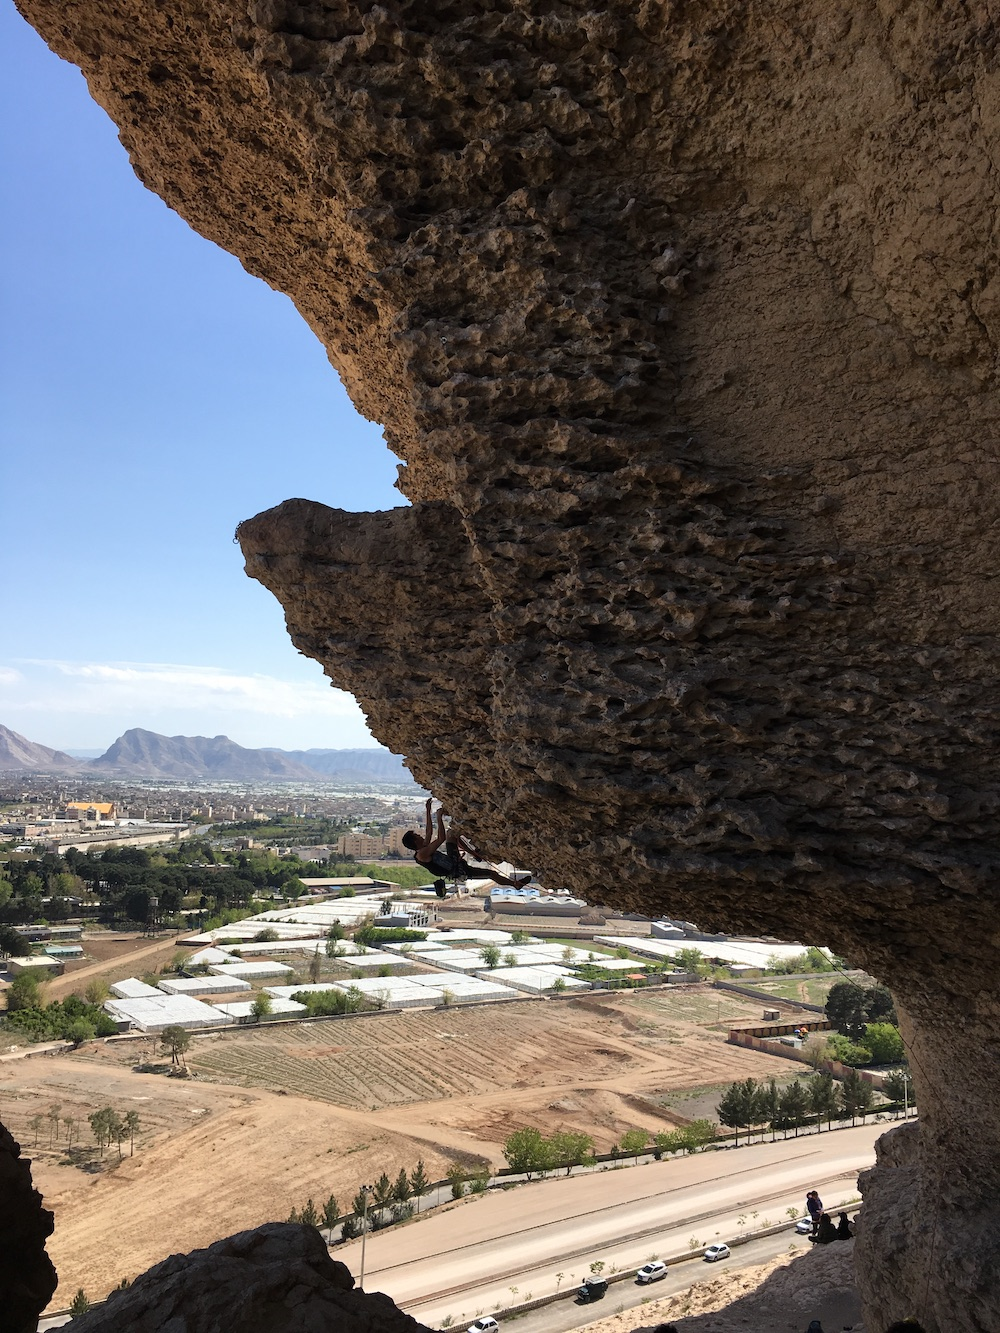 photo of someone climbing up a rock face, suspended on the underside of an outcropping